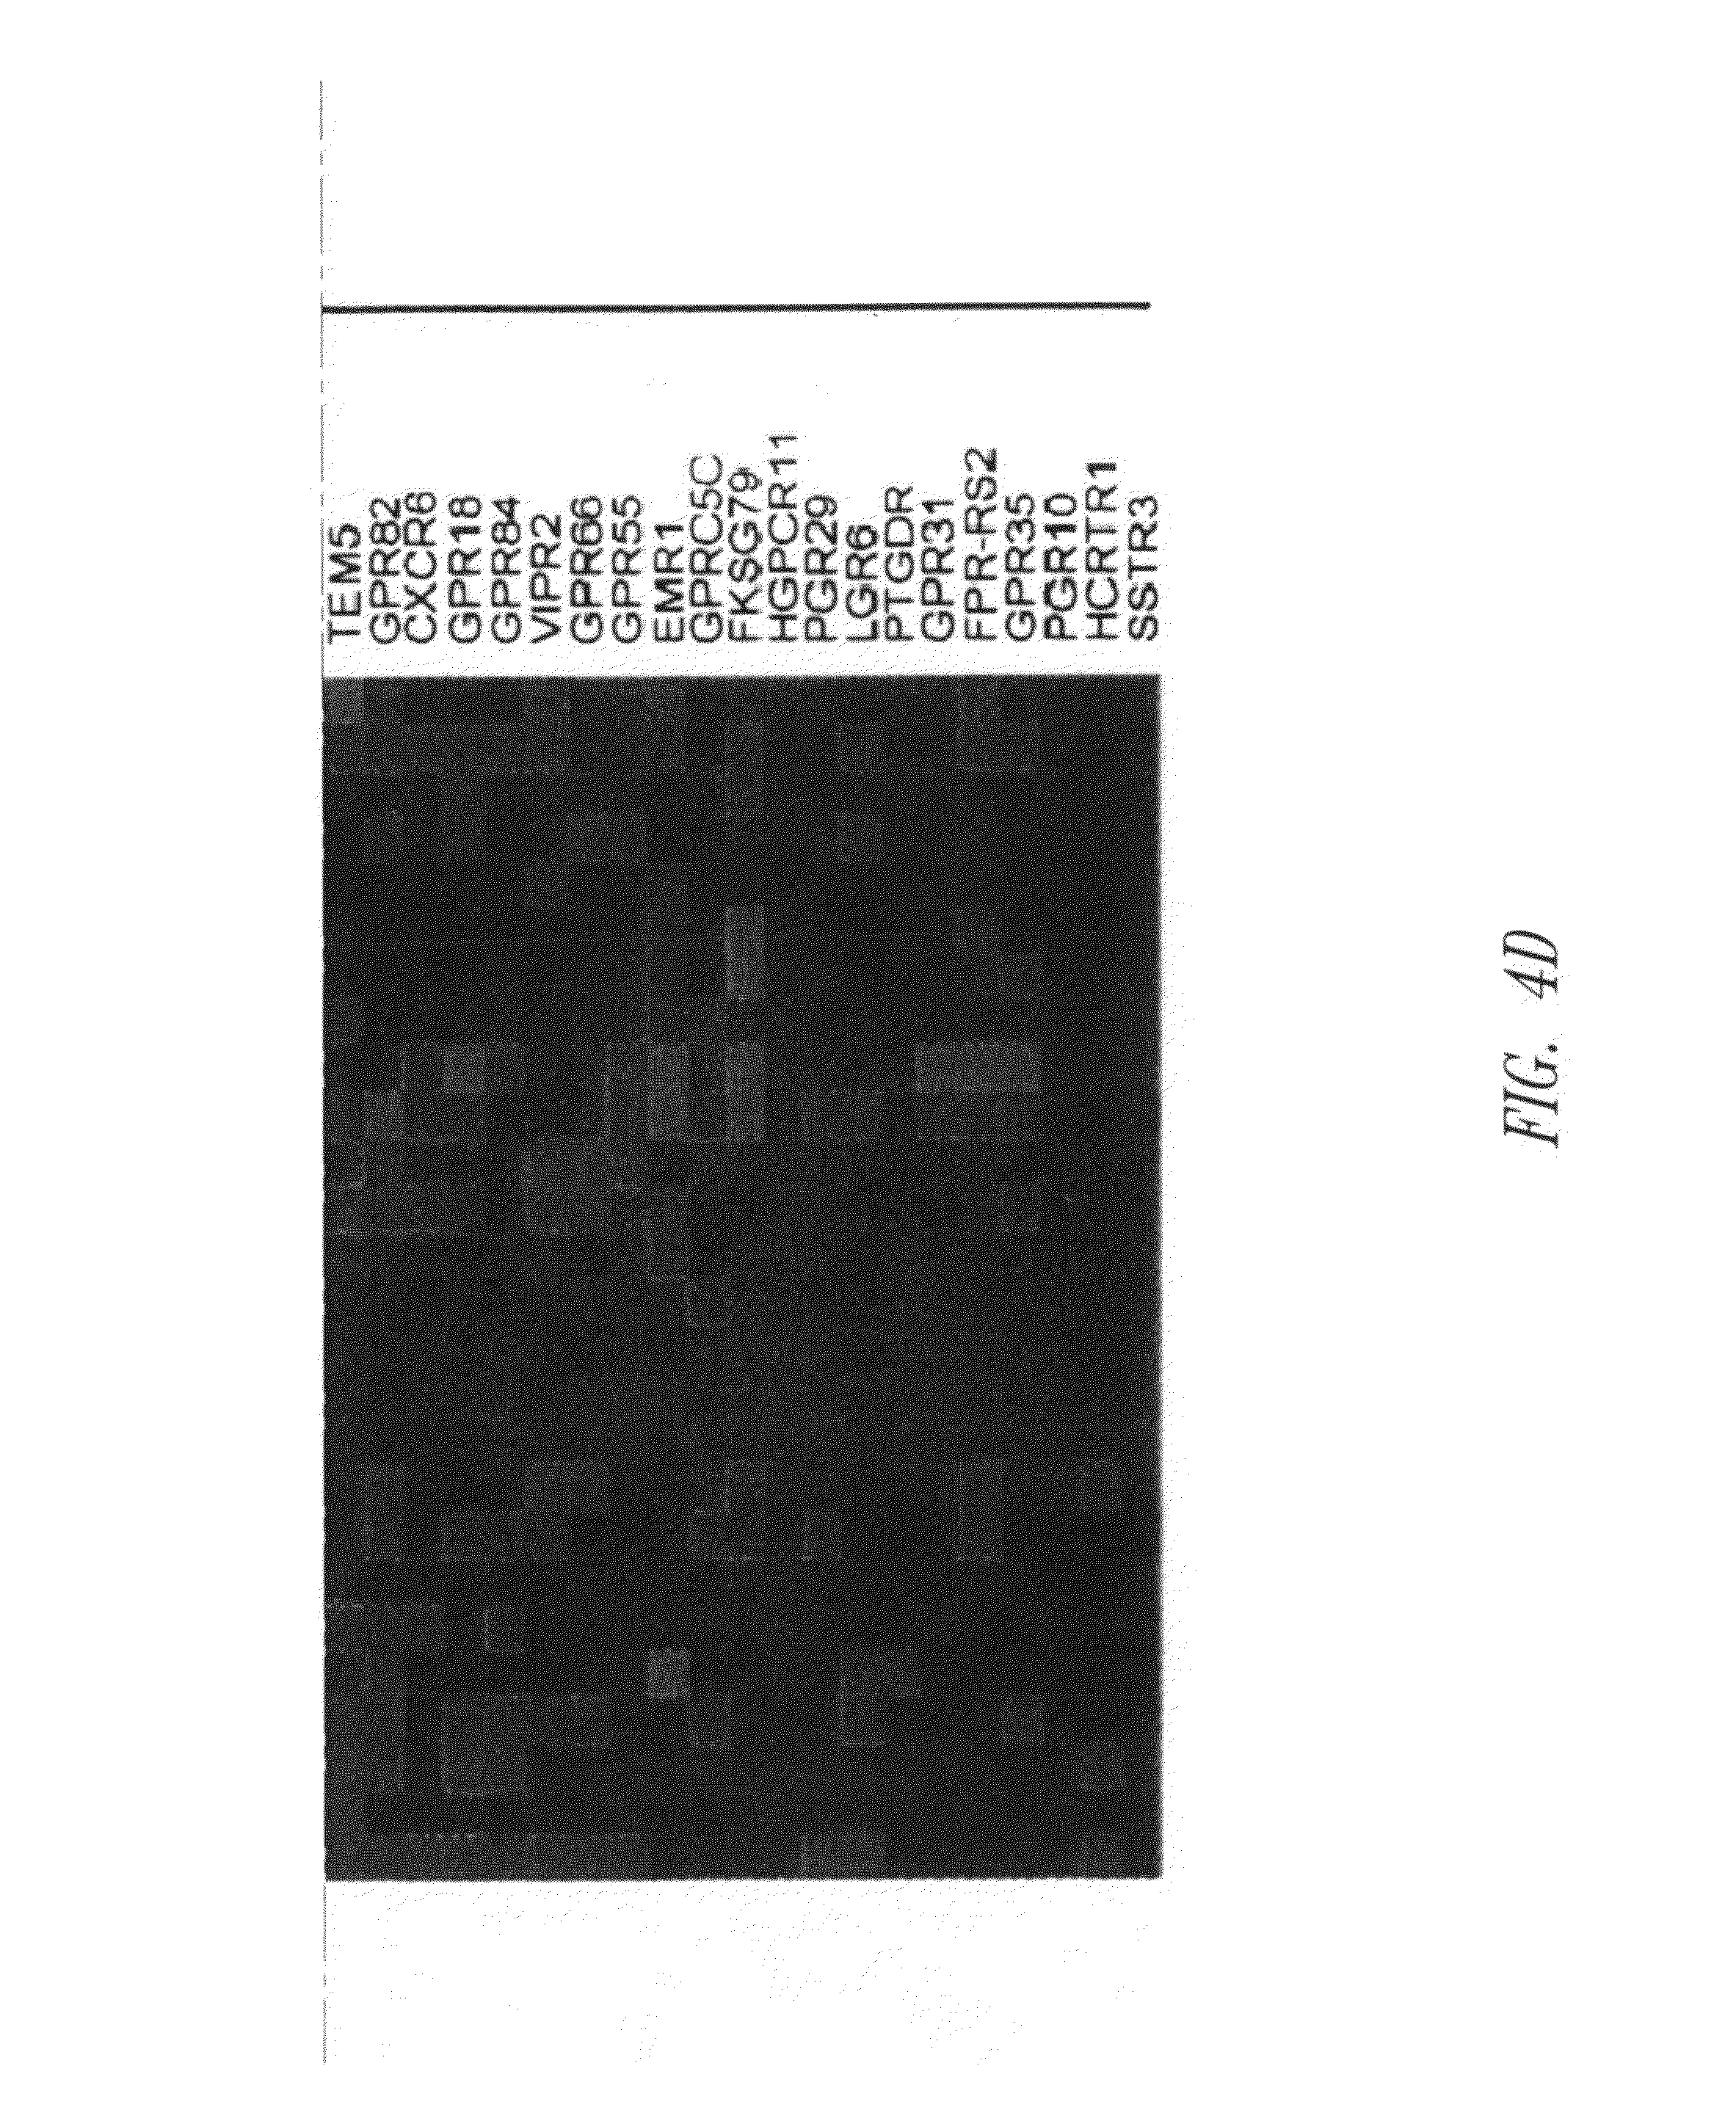 US8999654B2 Method of identifying a compound